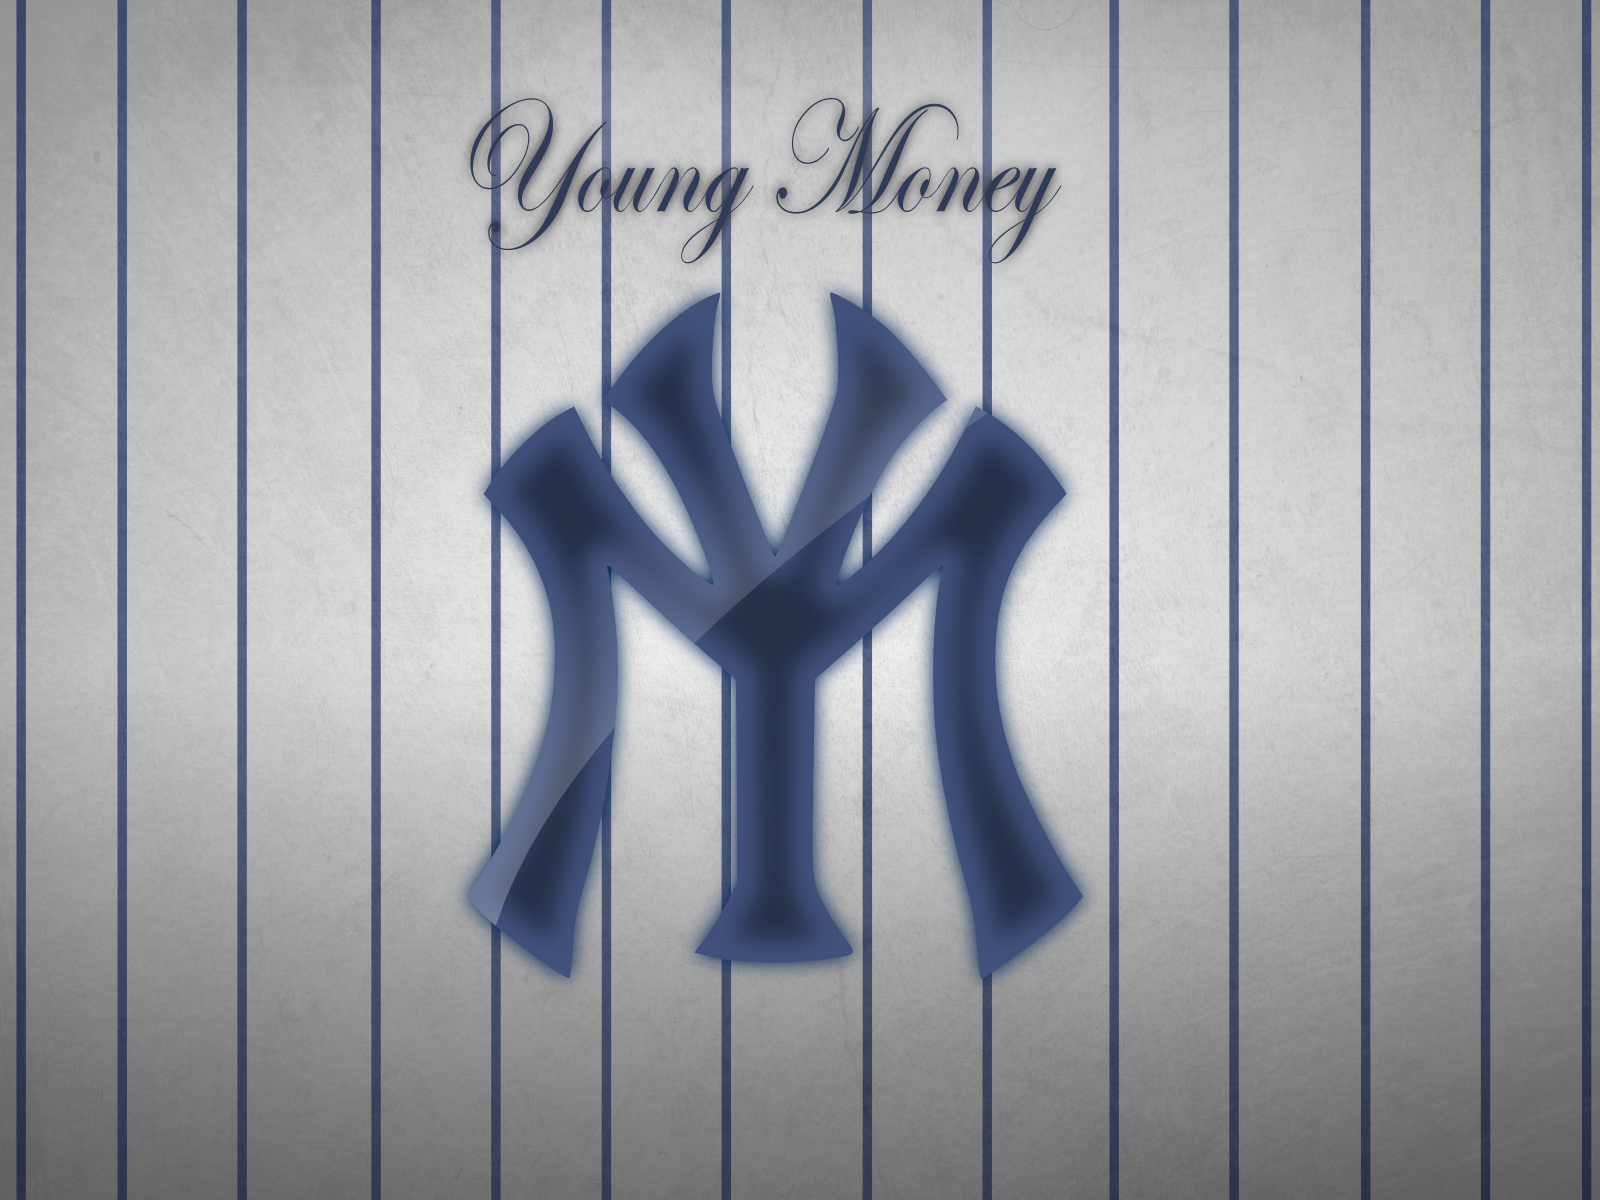 Young Money Wallpaper - Viewing Gallery